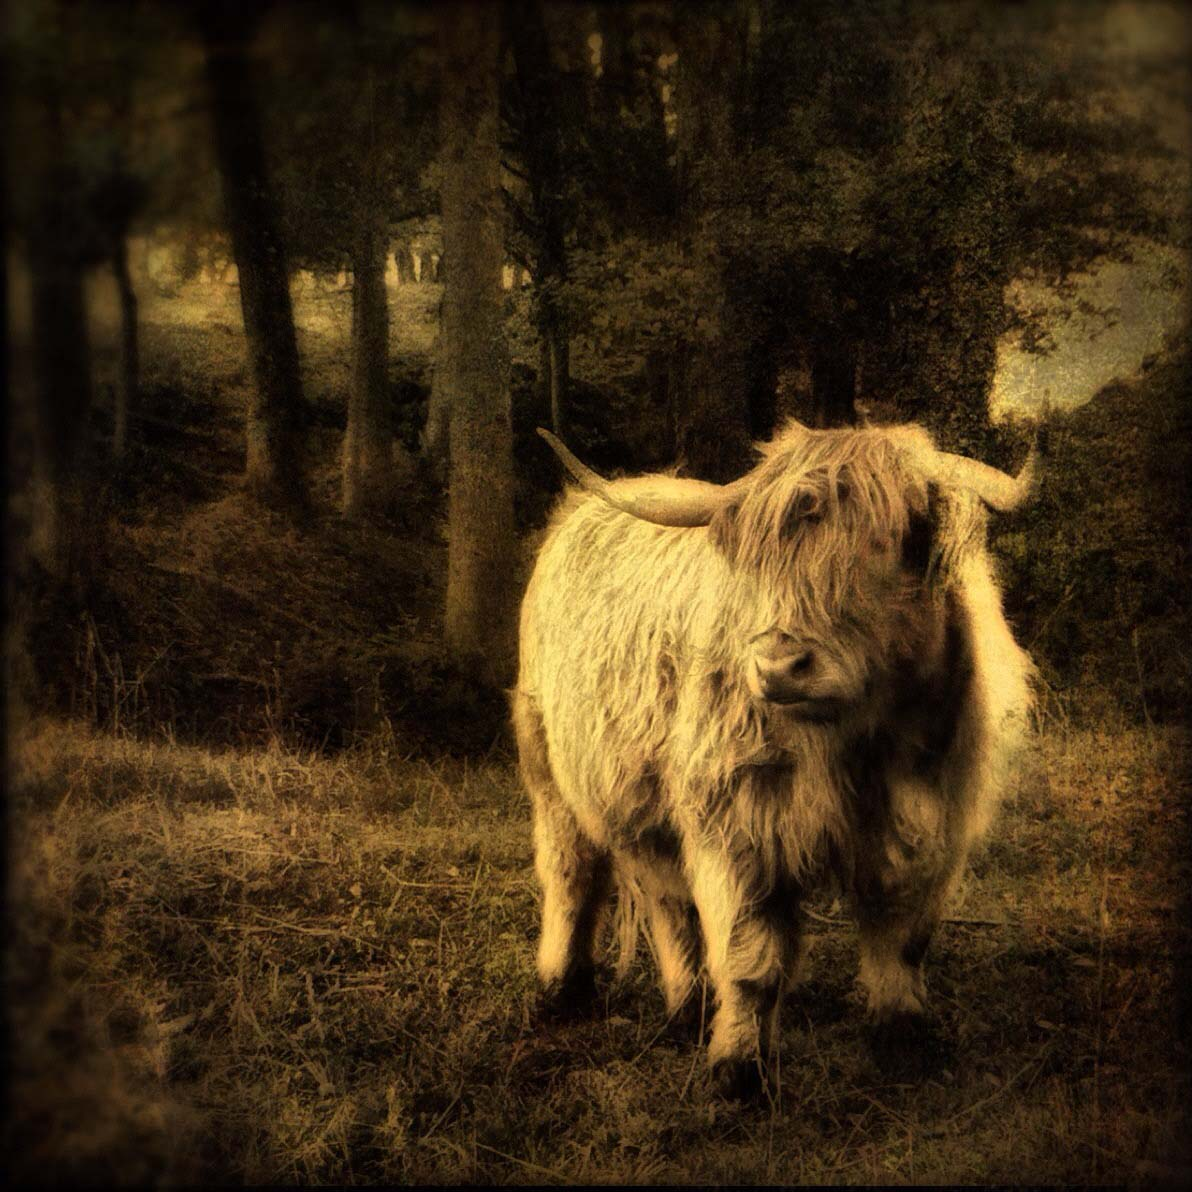 2011 Winner: Highland Cow by Gilles Peroud